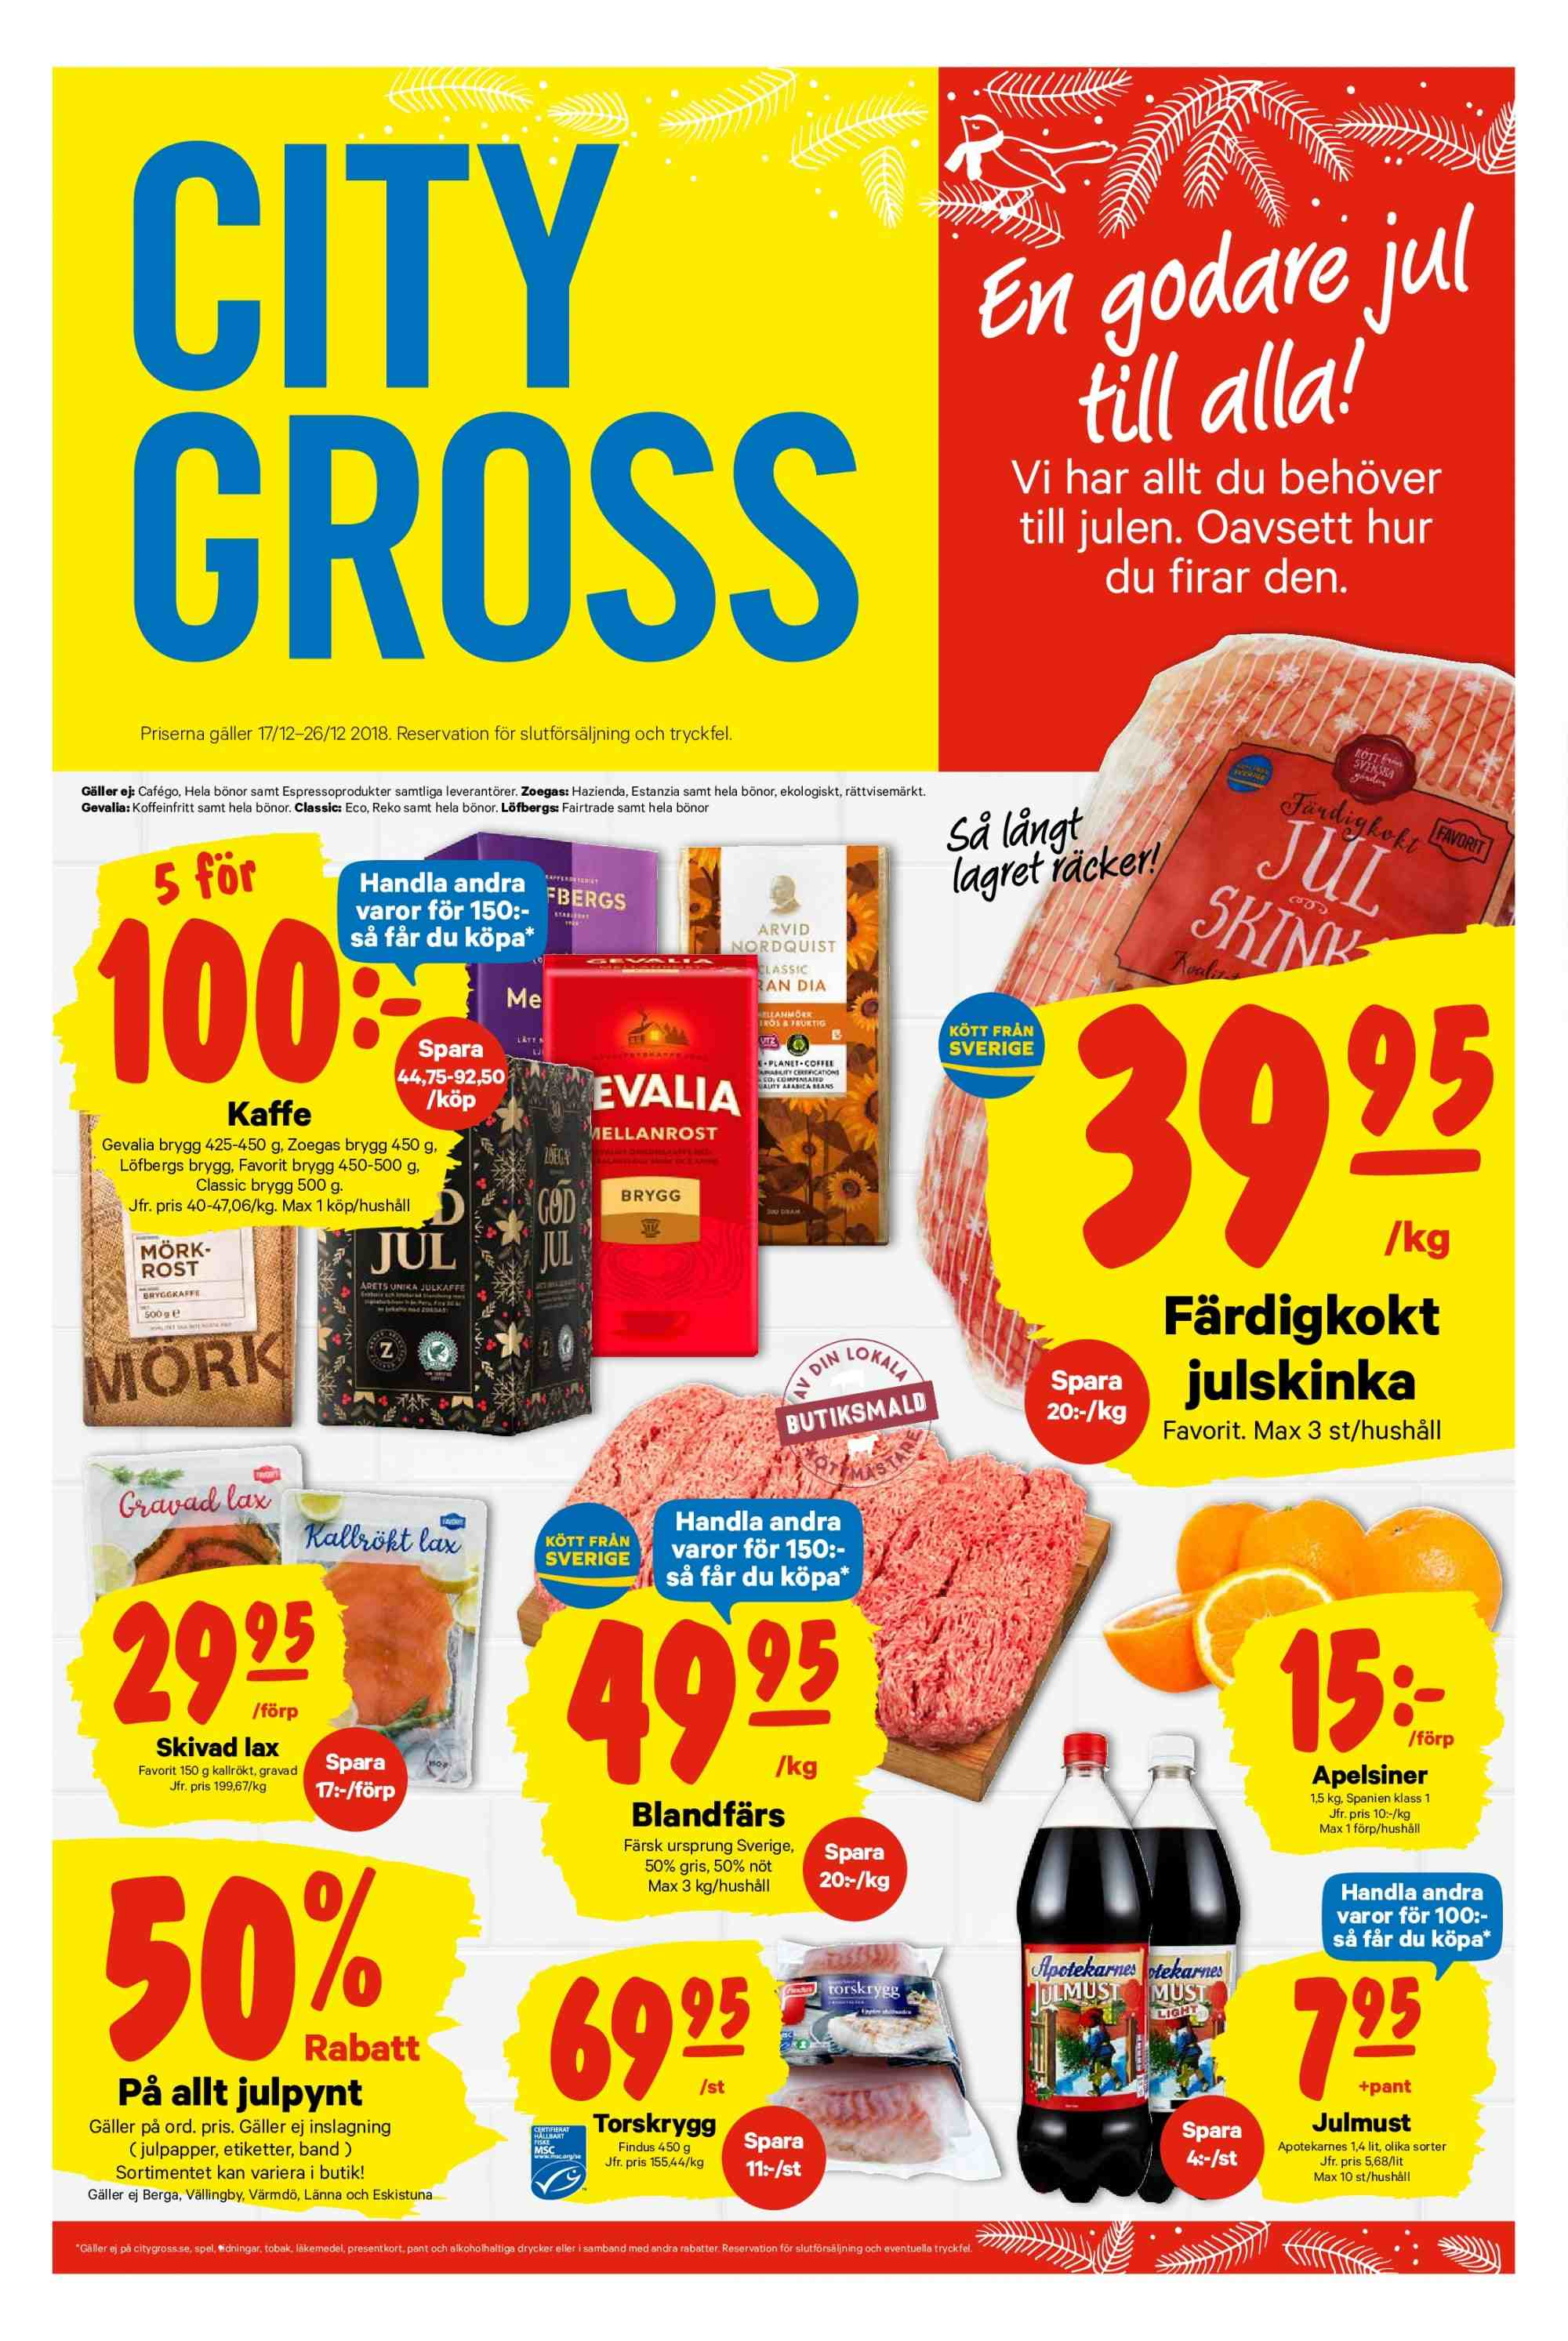 City Gross reklamblad - 17/12 2018 - 26/12 2018. Sida 1.